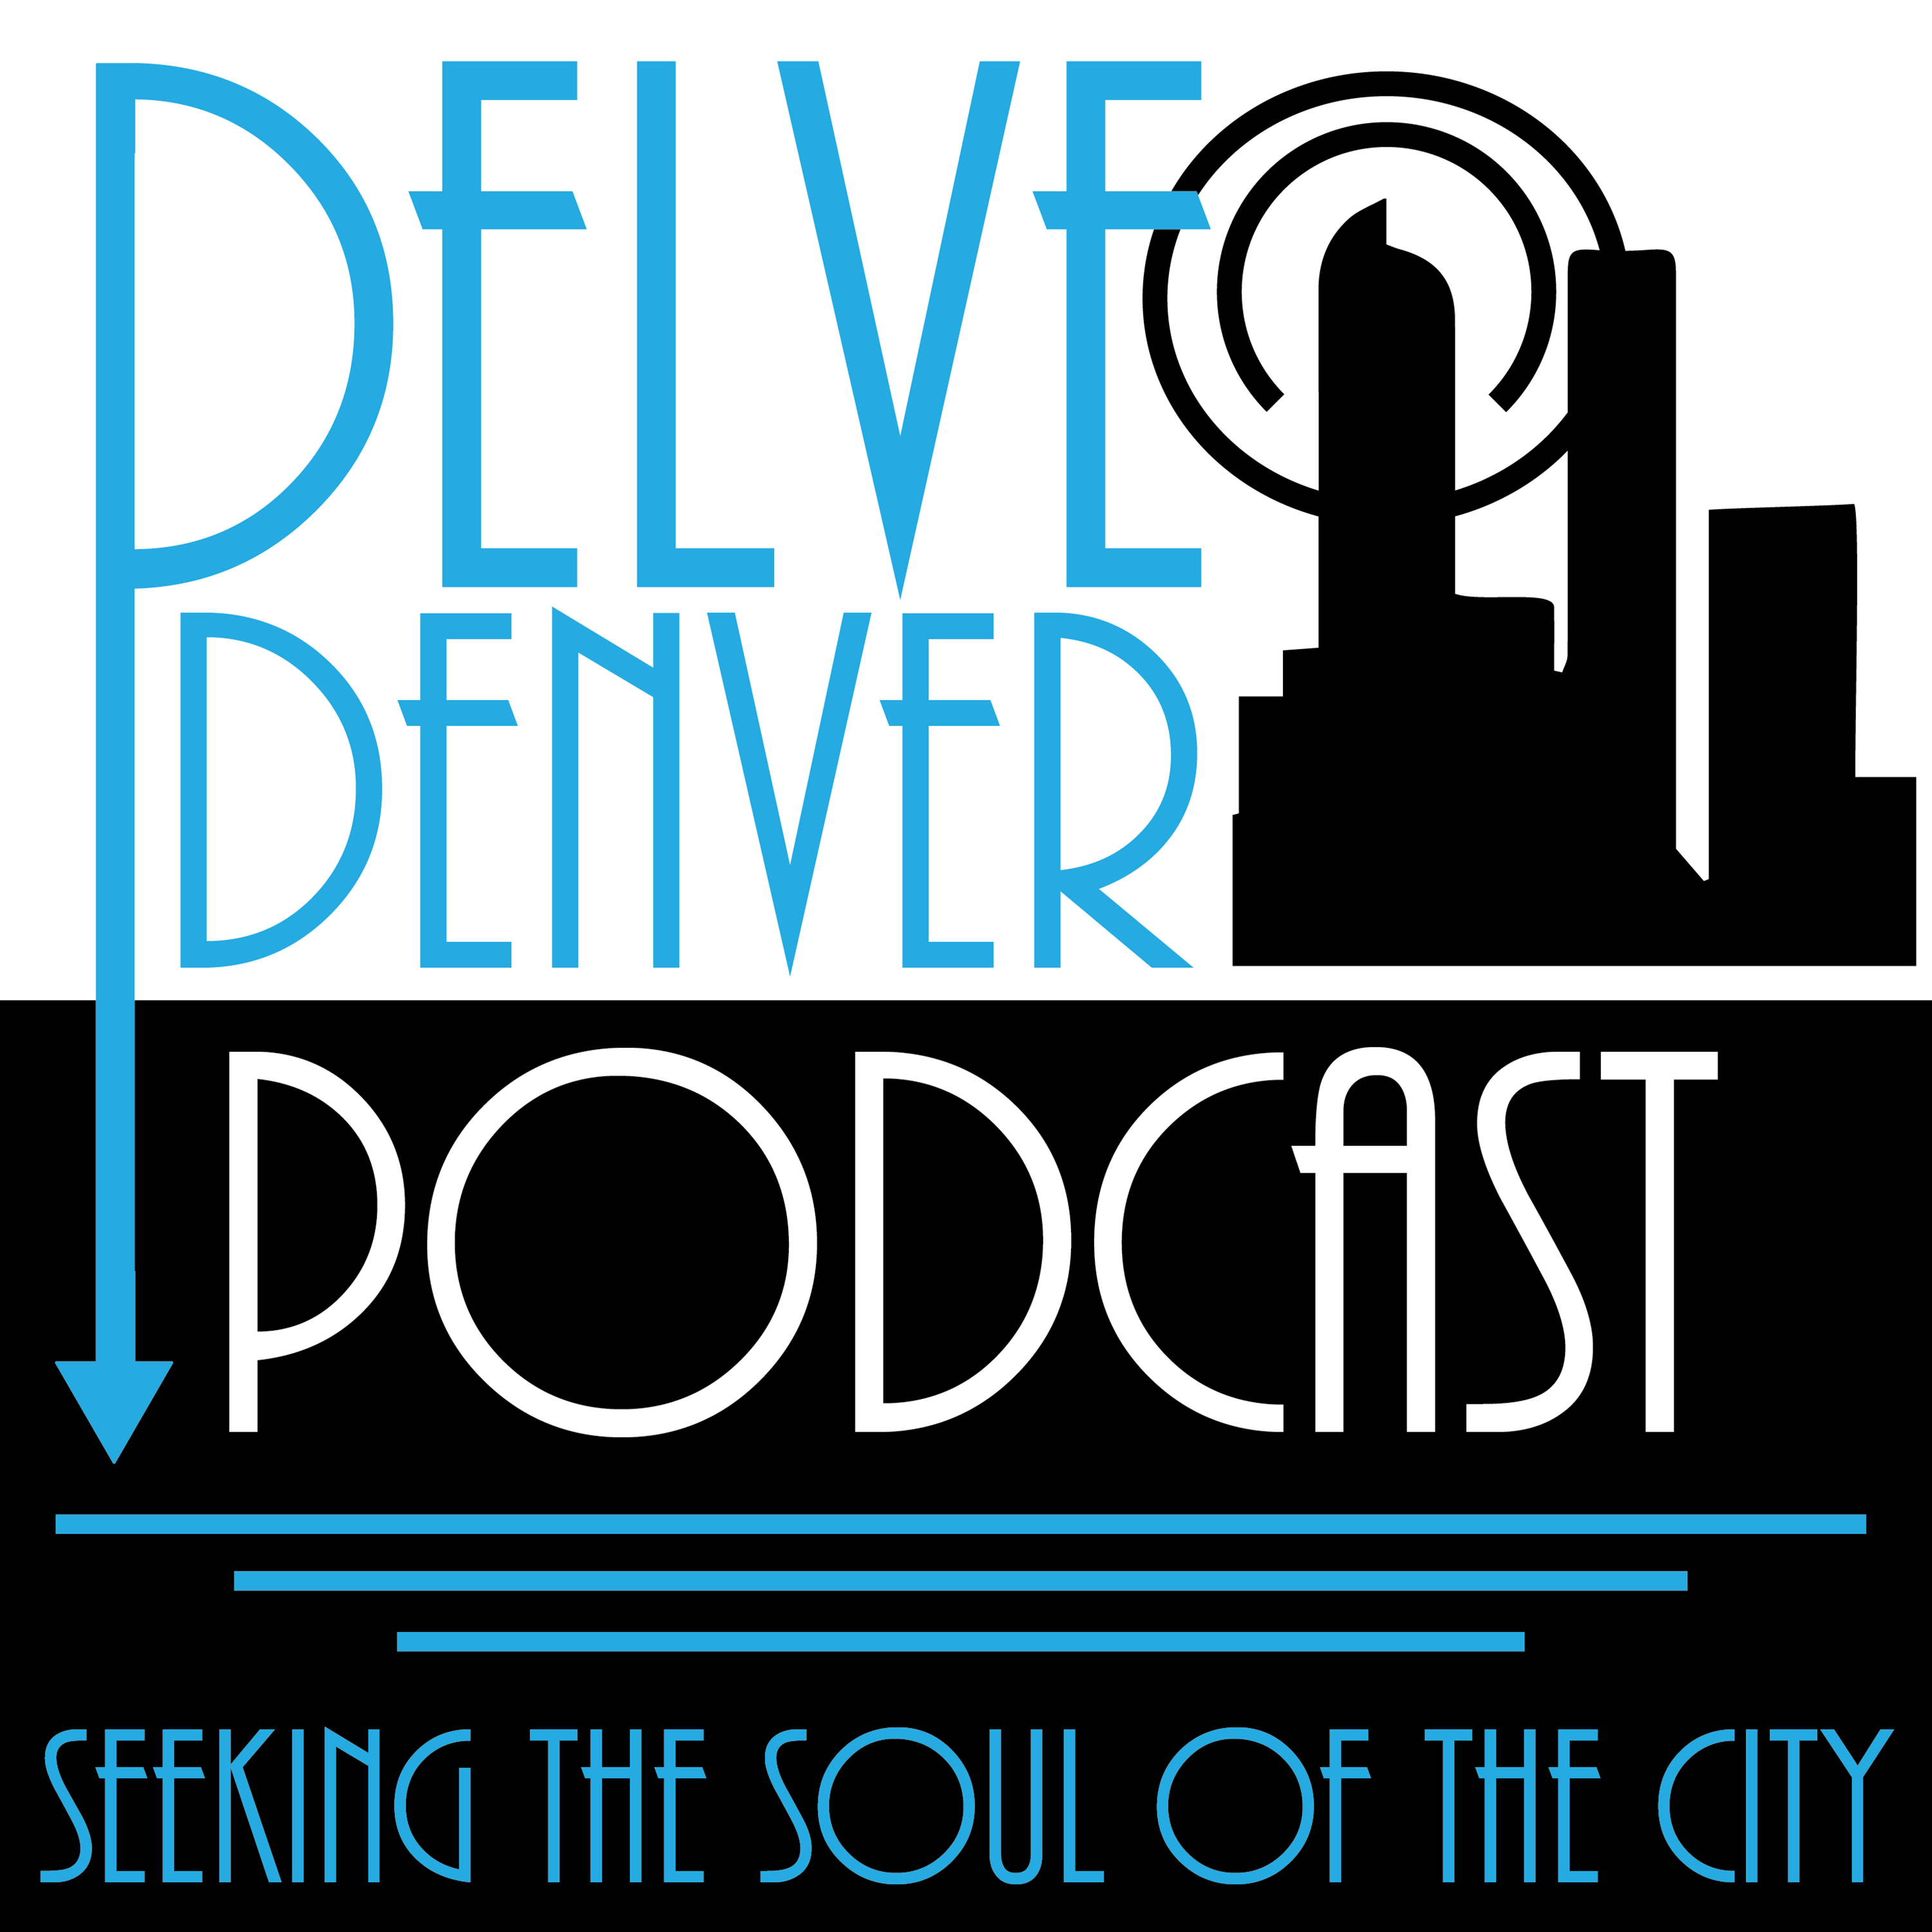 Delve Denver Podcast